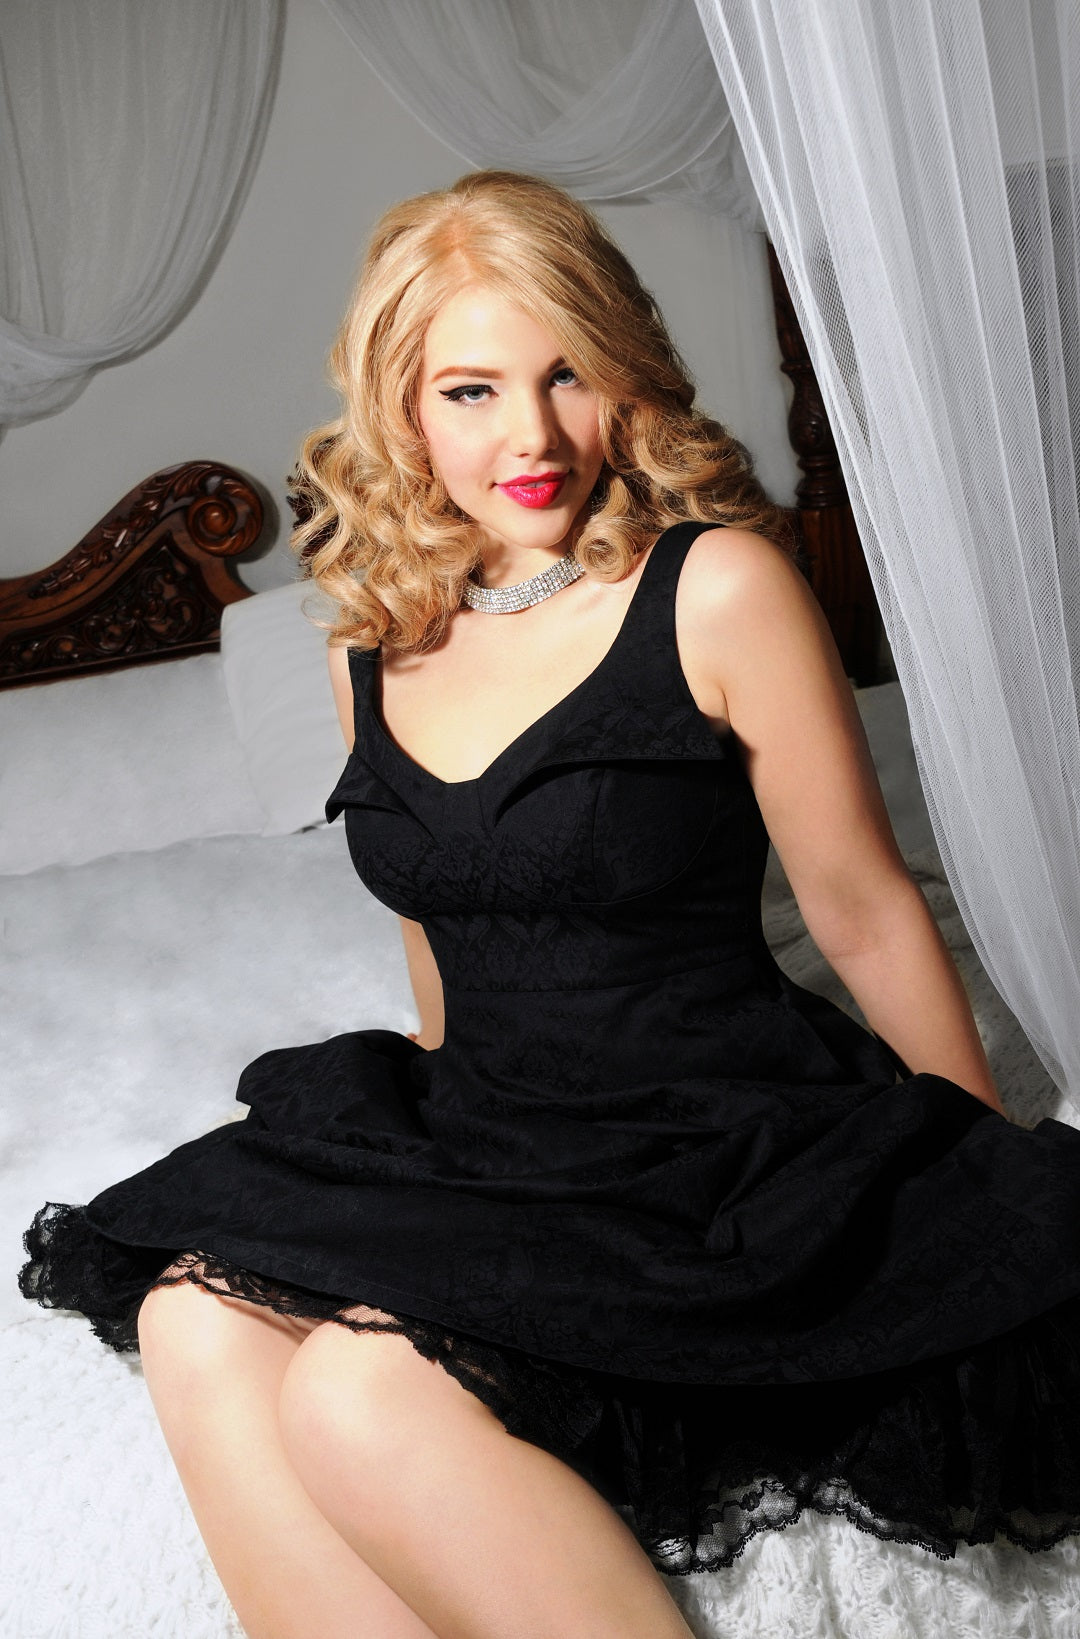 Elly Mayday modelling the Cherry Velvet dress that was named for her, the Elly